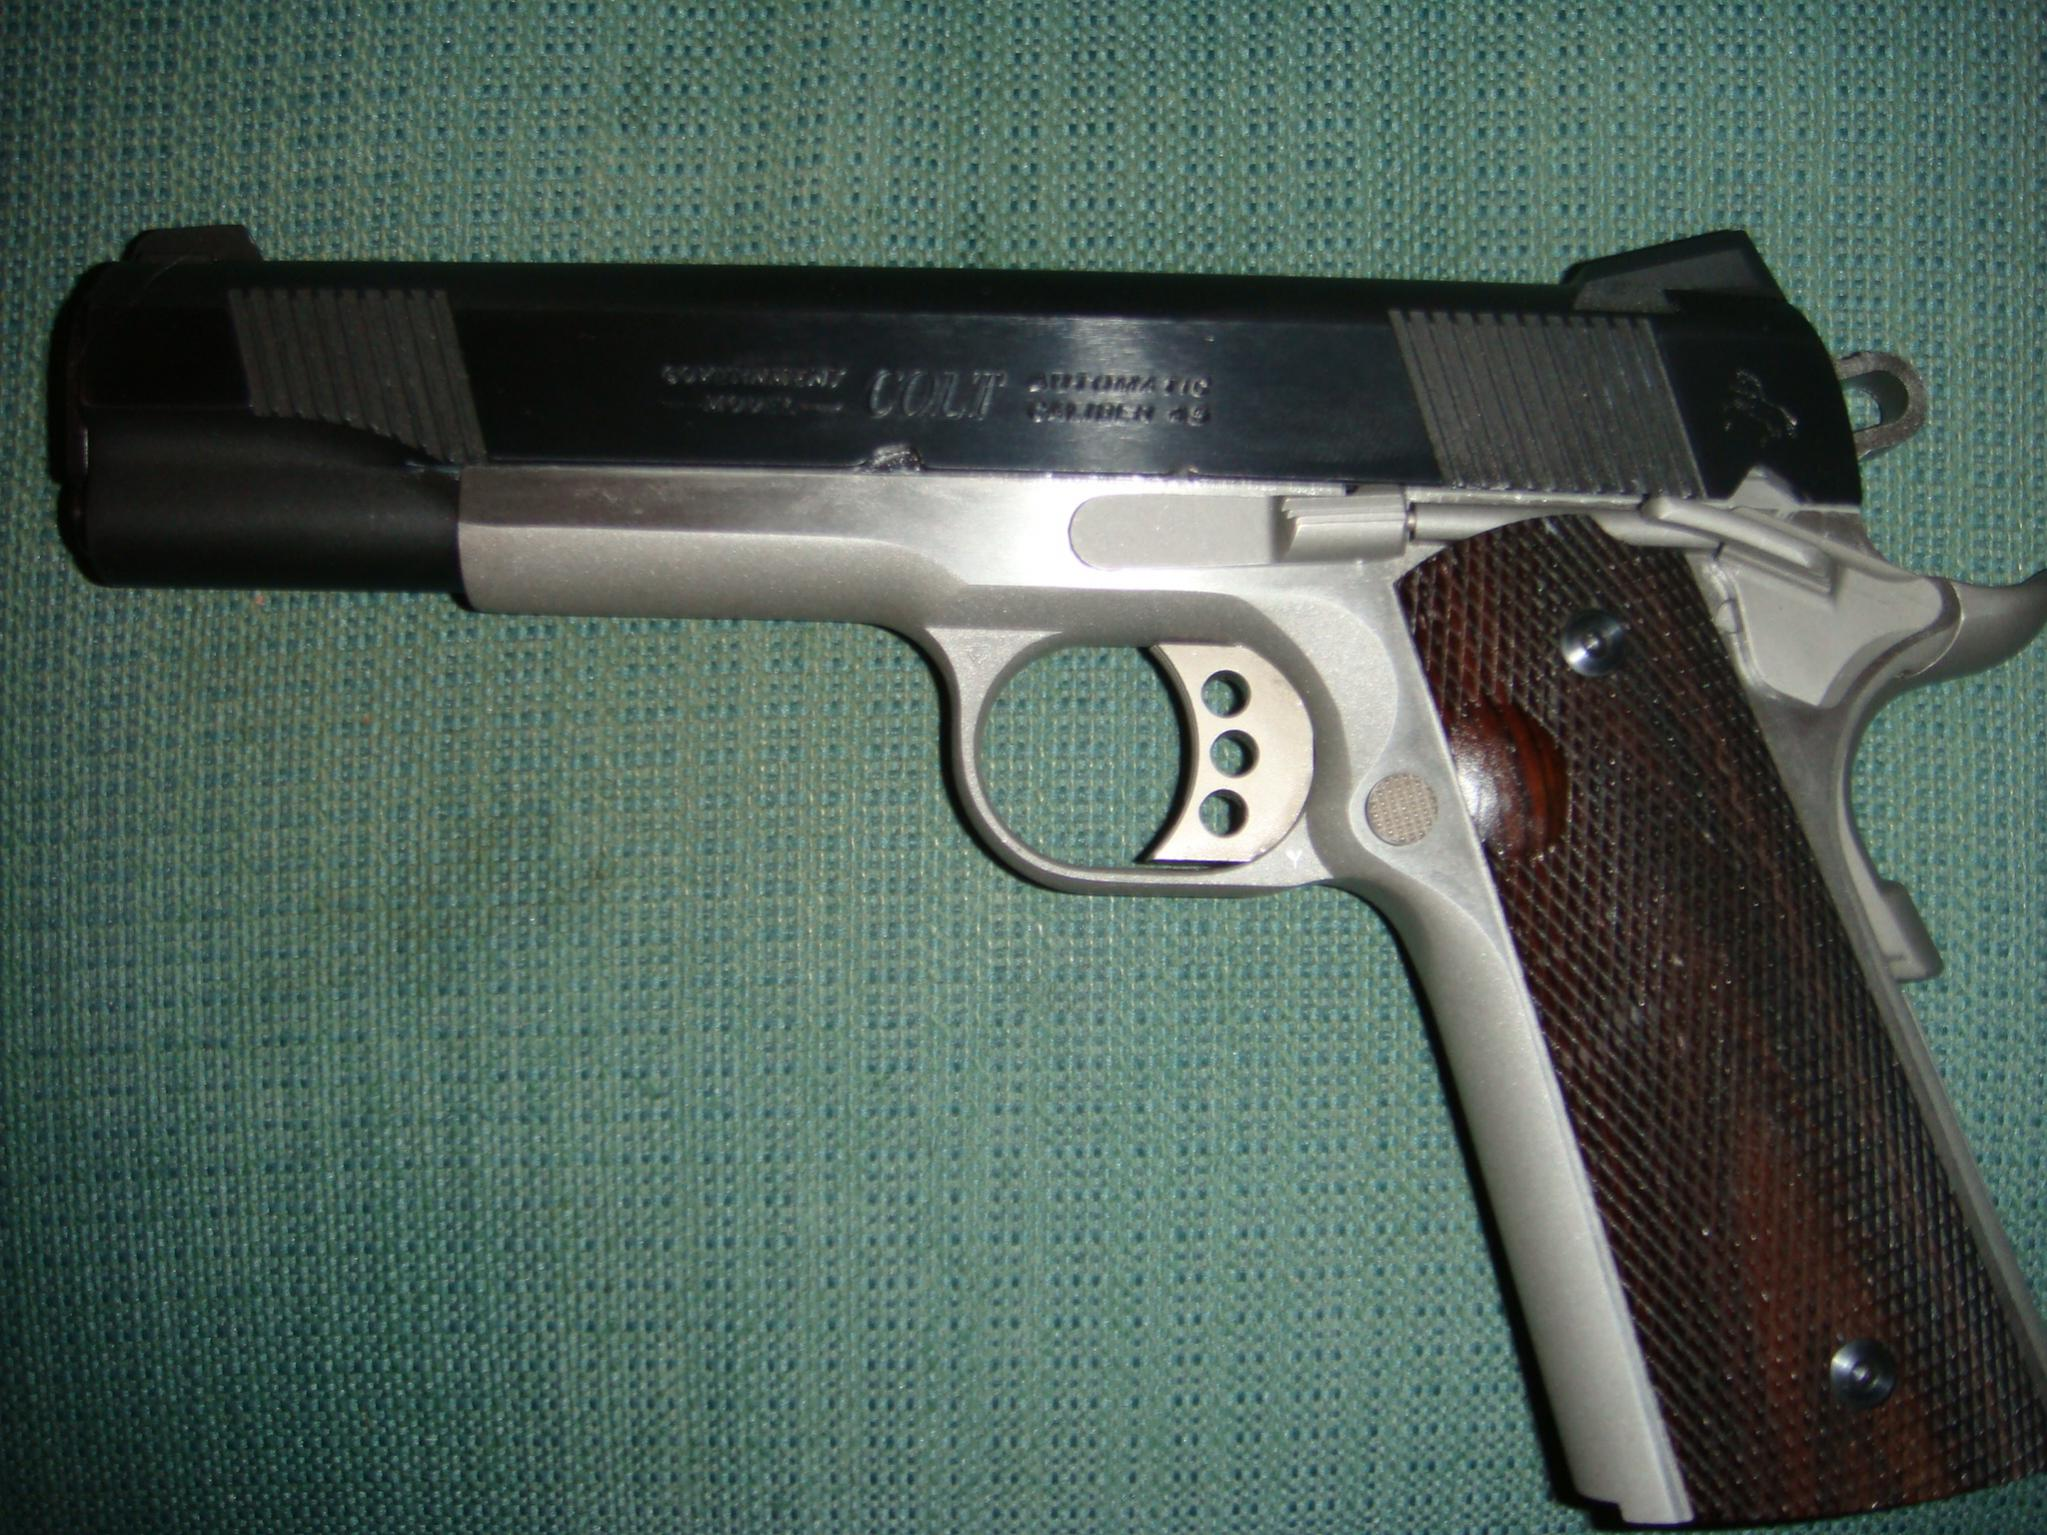 1911 upgrade options, what have you done to yours and why?-dsc00770.jpg